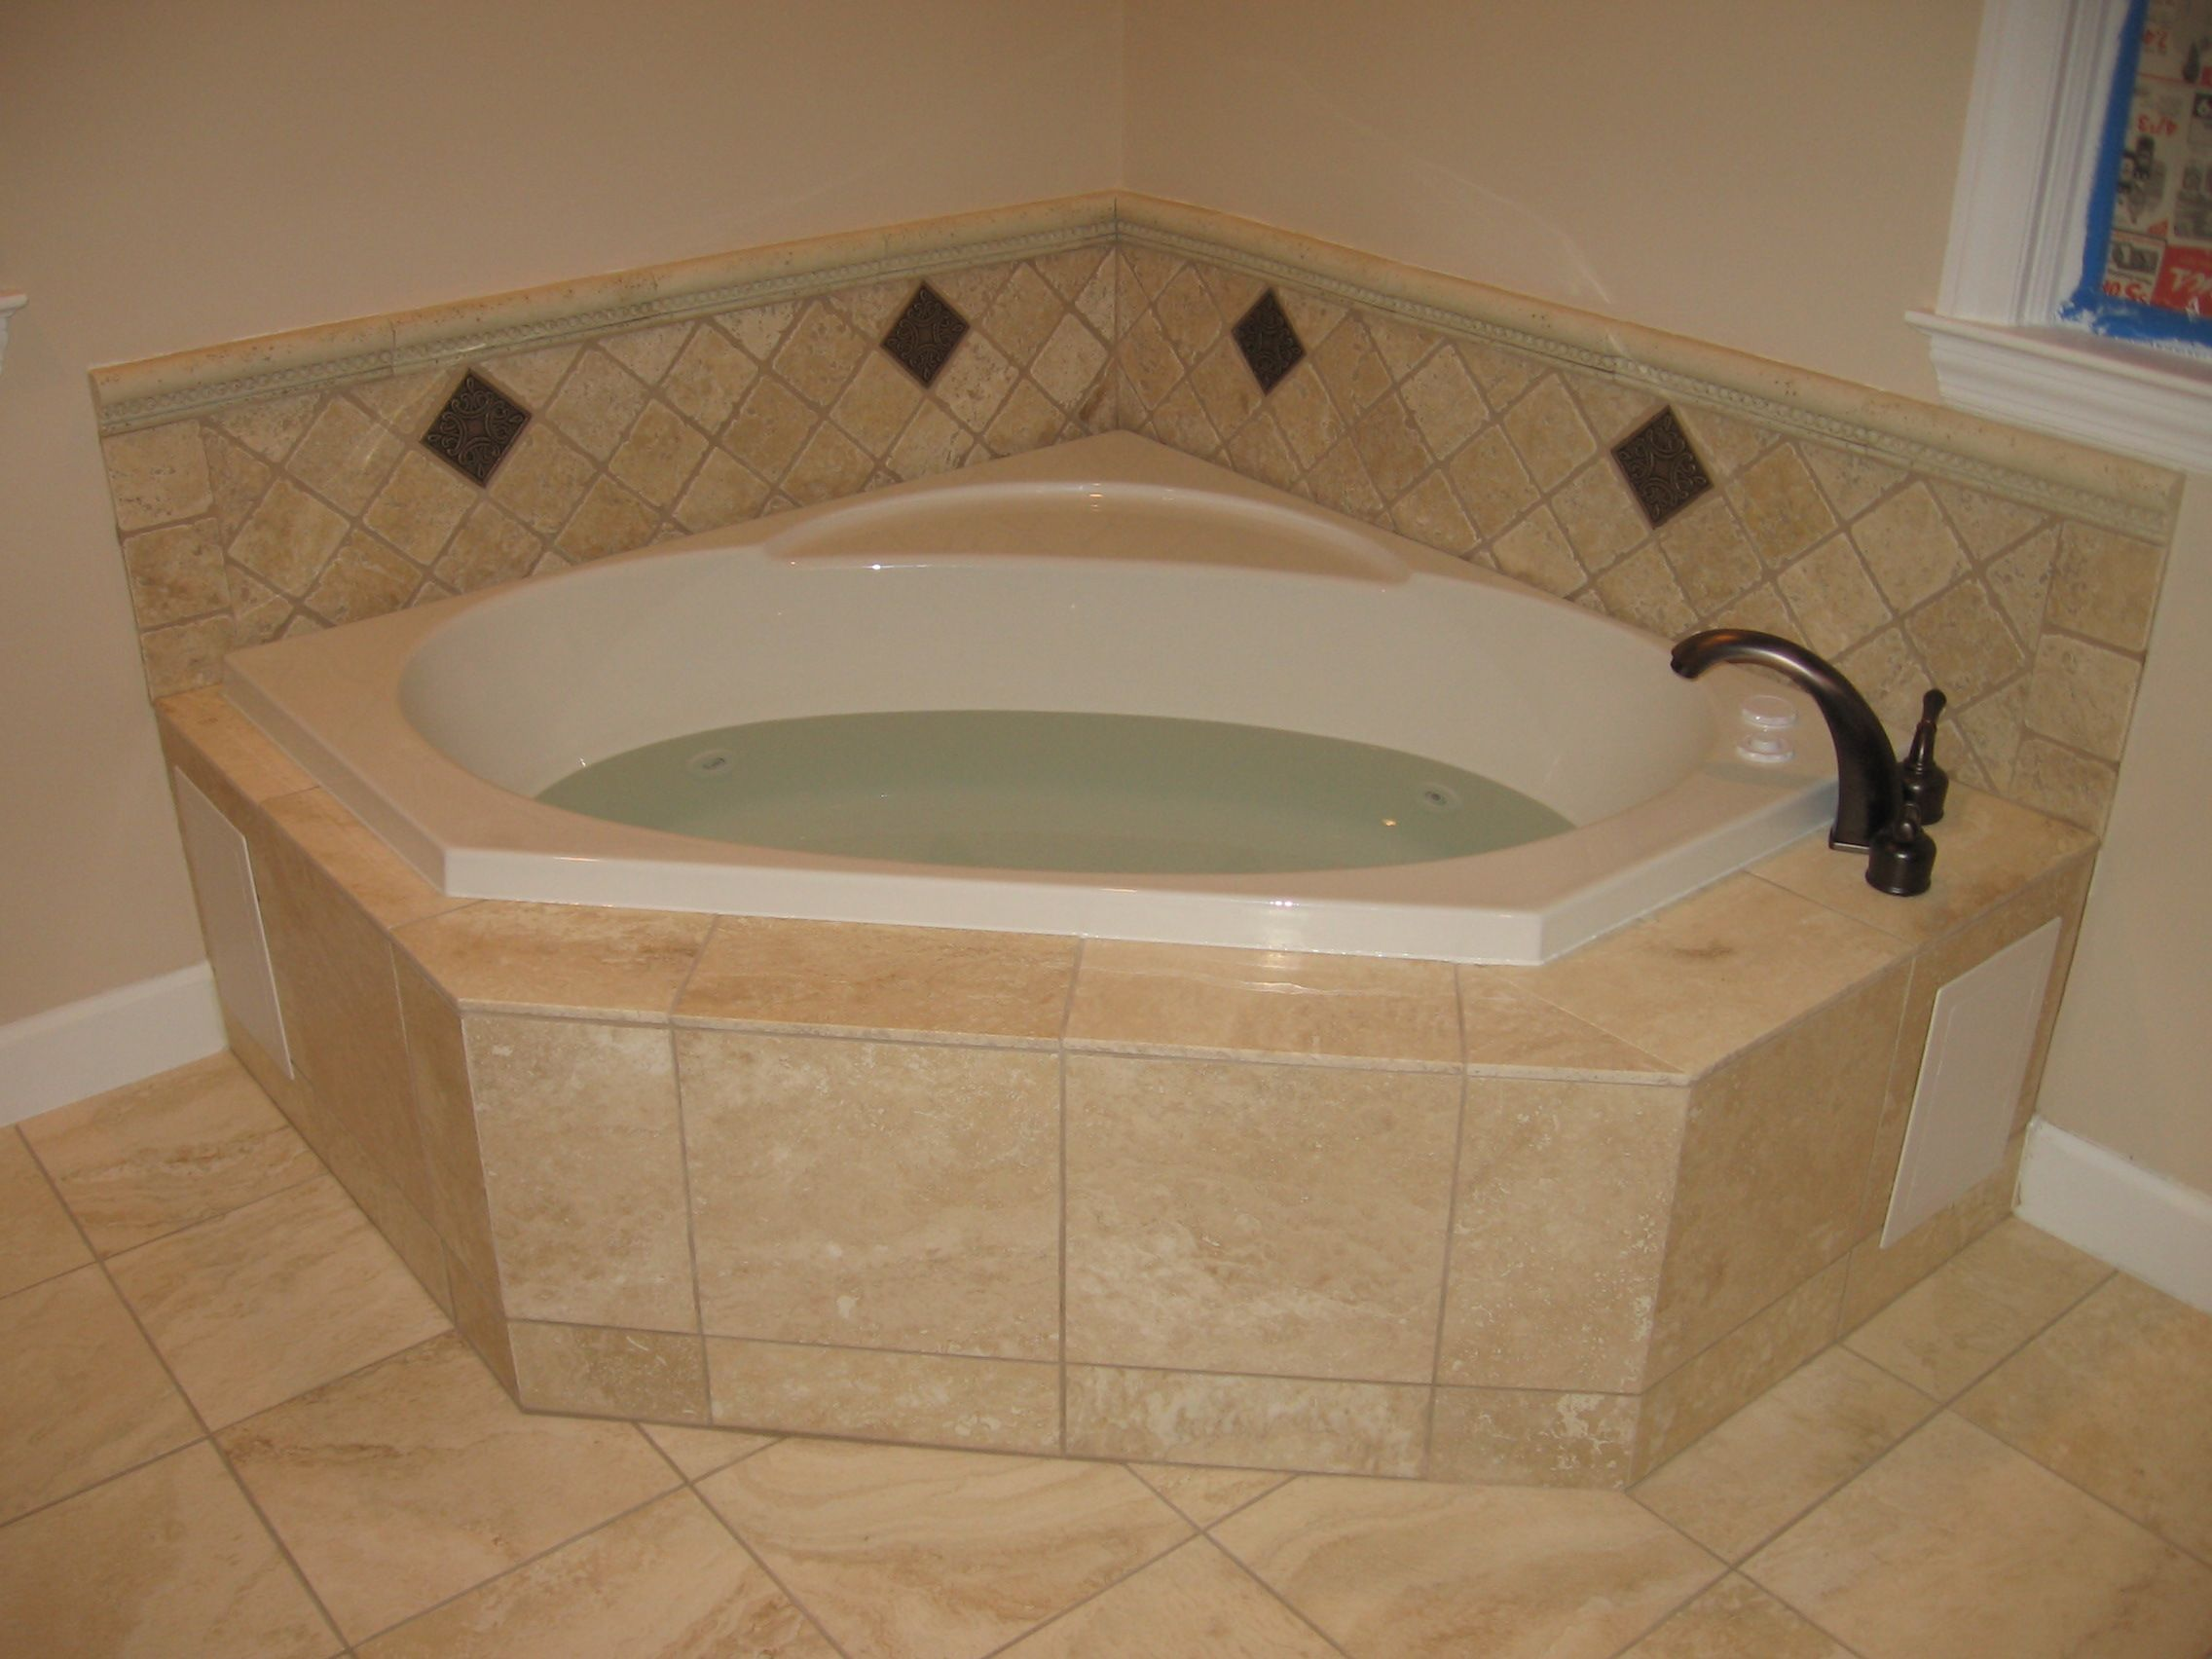 15 interesting whirlpool corner bathtub picture ideas for Bathroom ideas jacuzzi tub